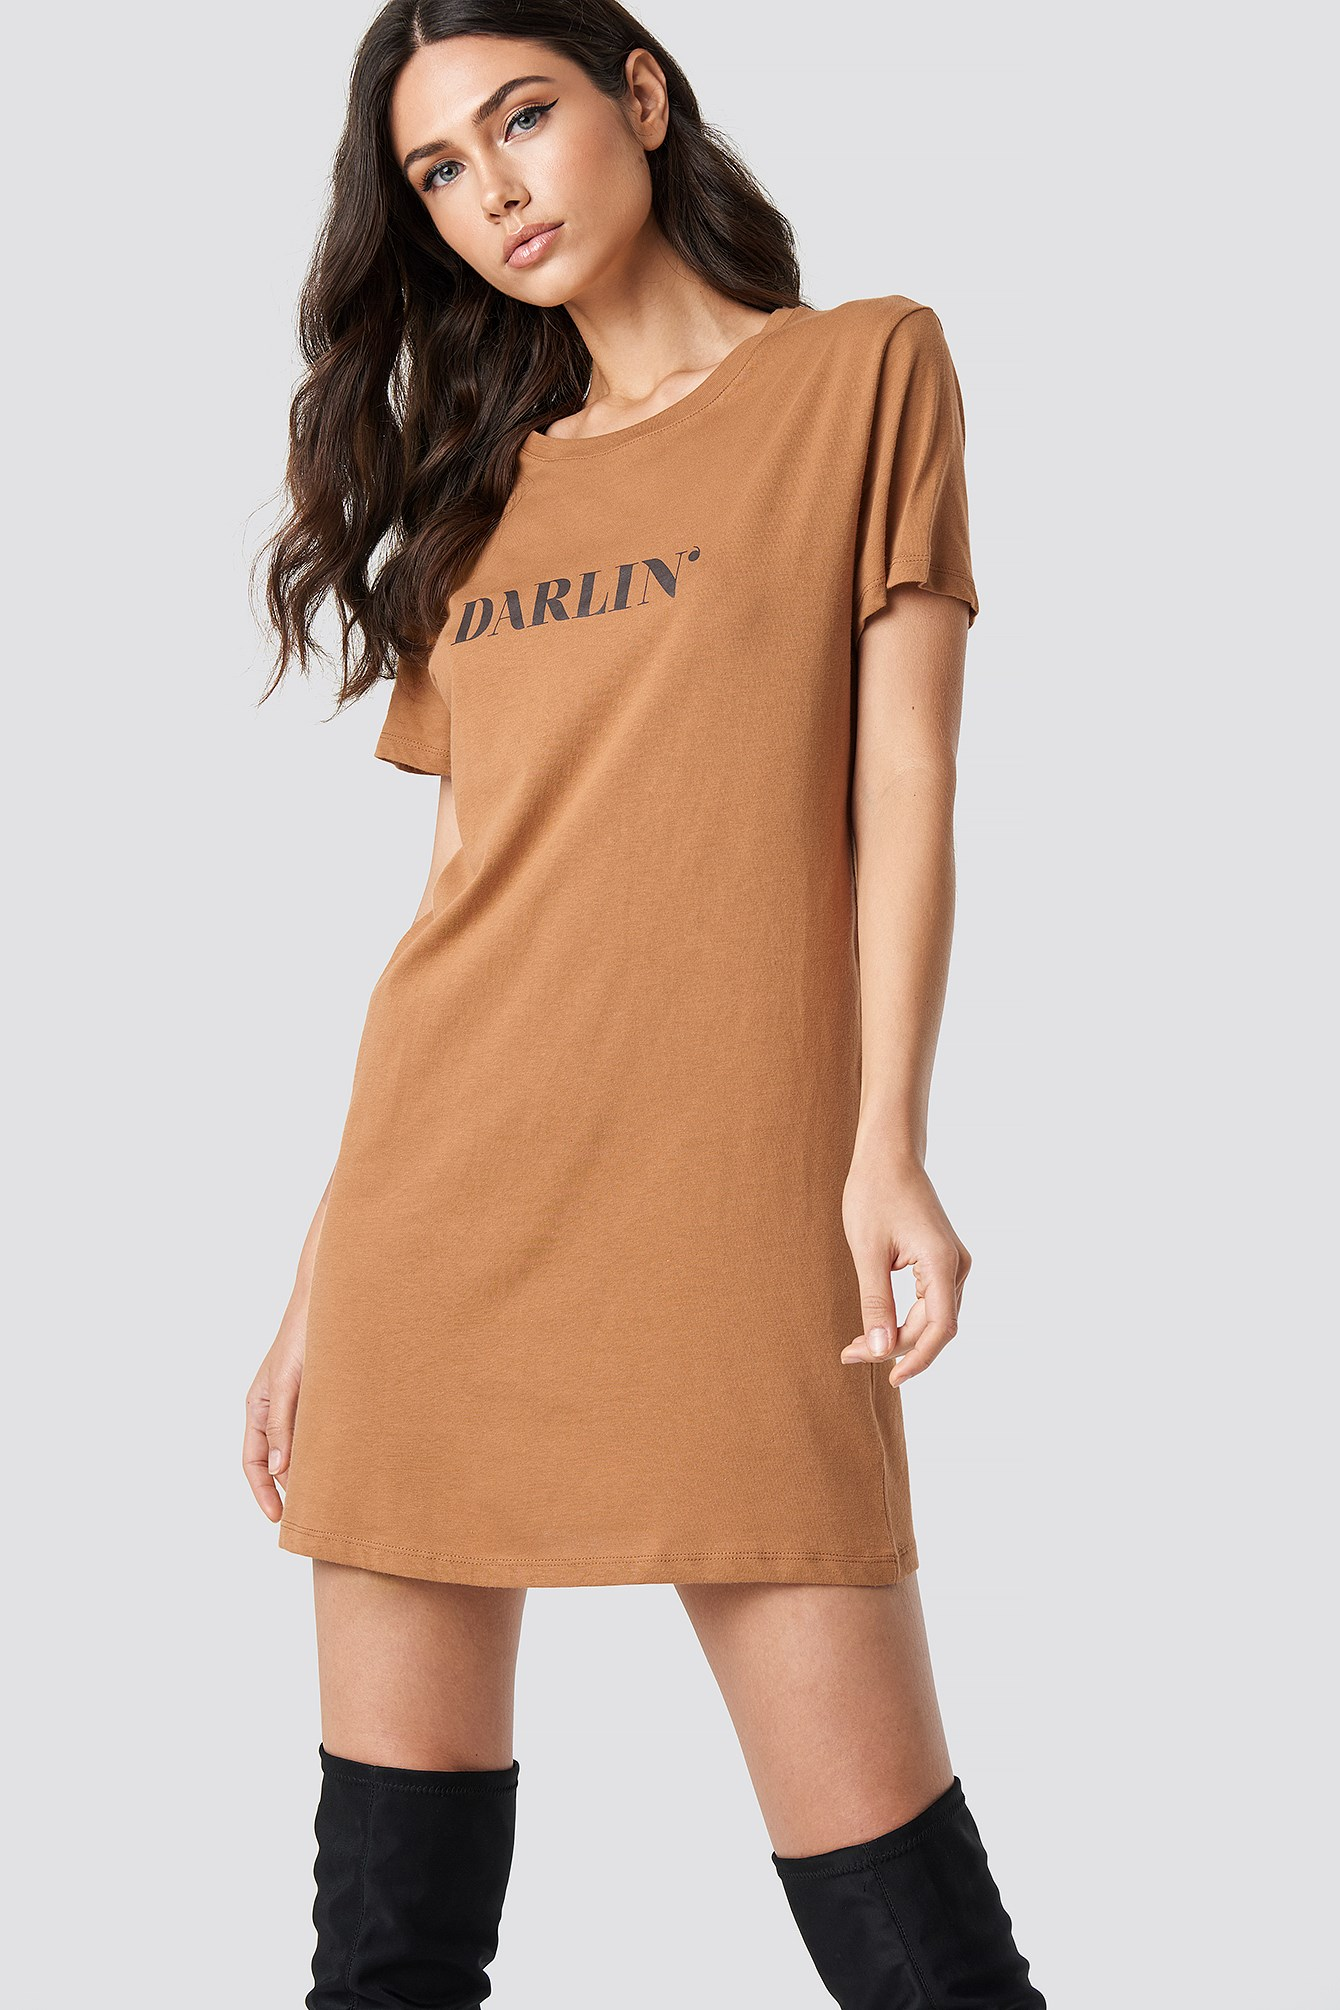 Darlin' T-shirt Dress NA-KD.COM